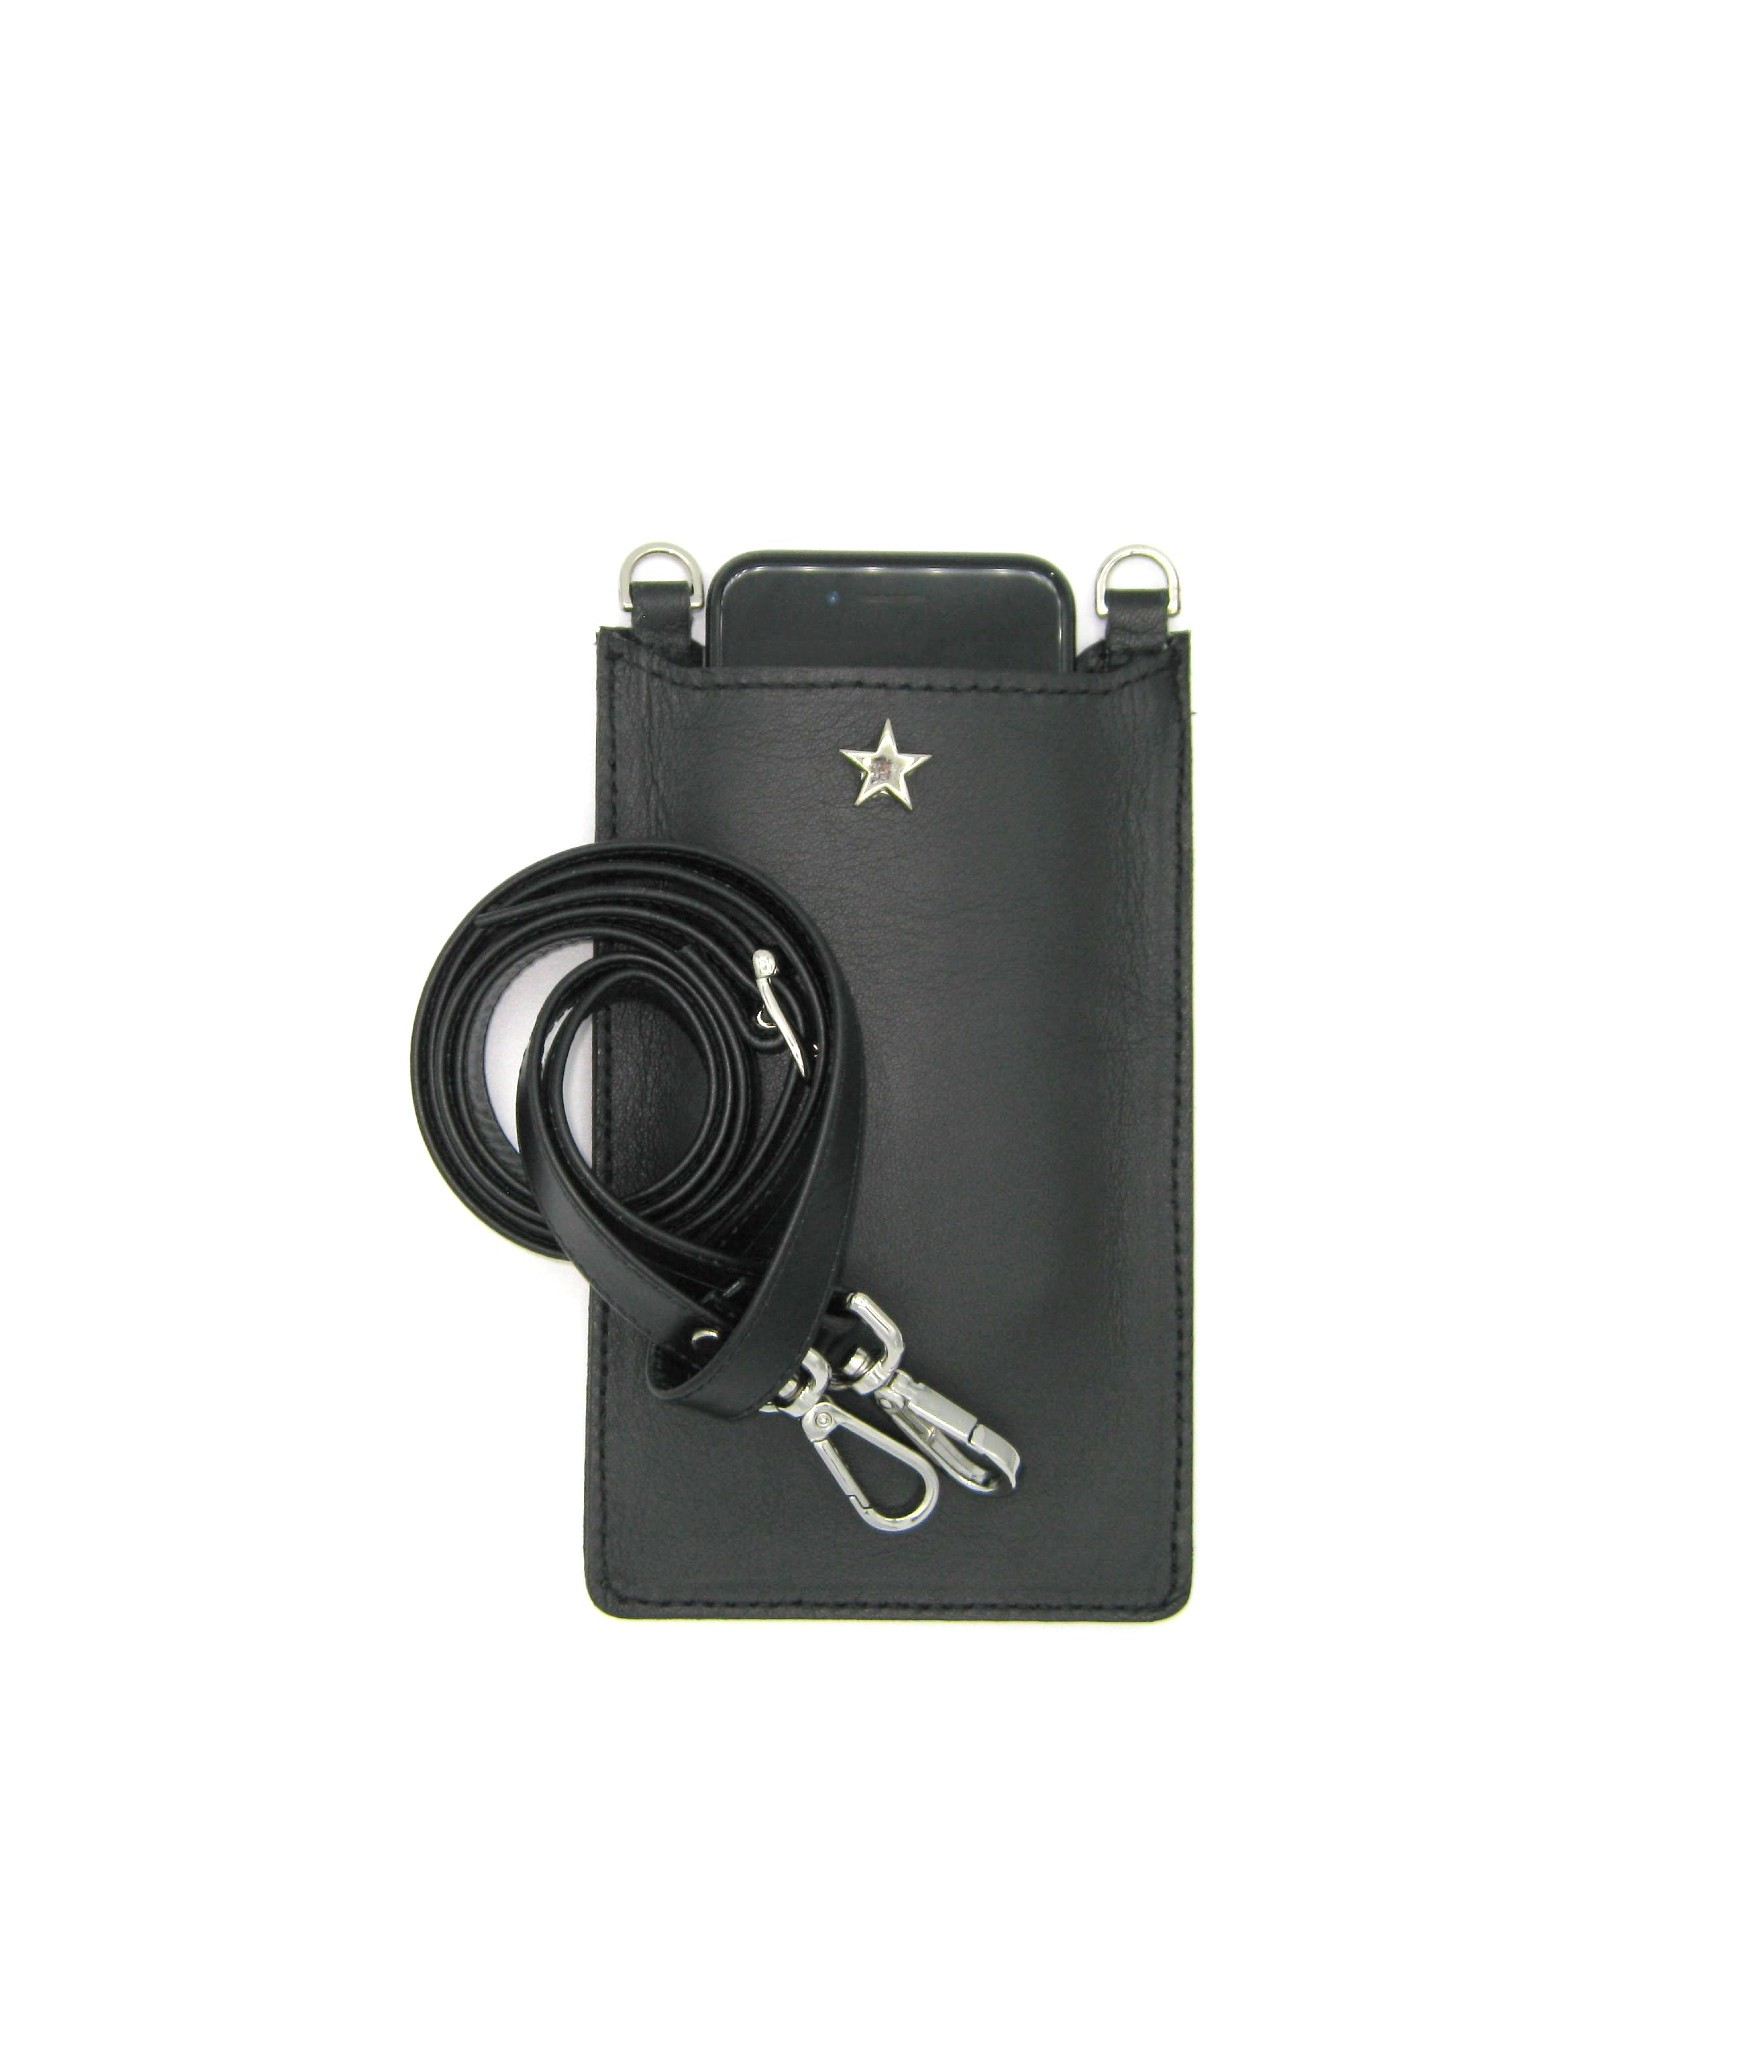 Cell Phone Holder in Nappa leather Black/Star+Hooks Silver